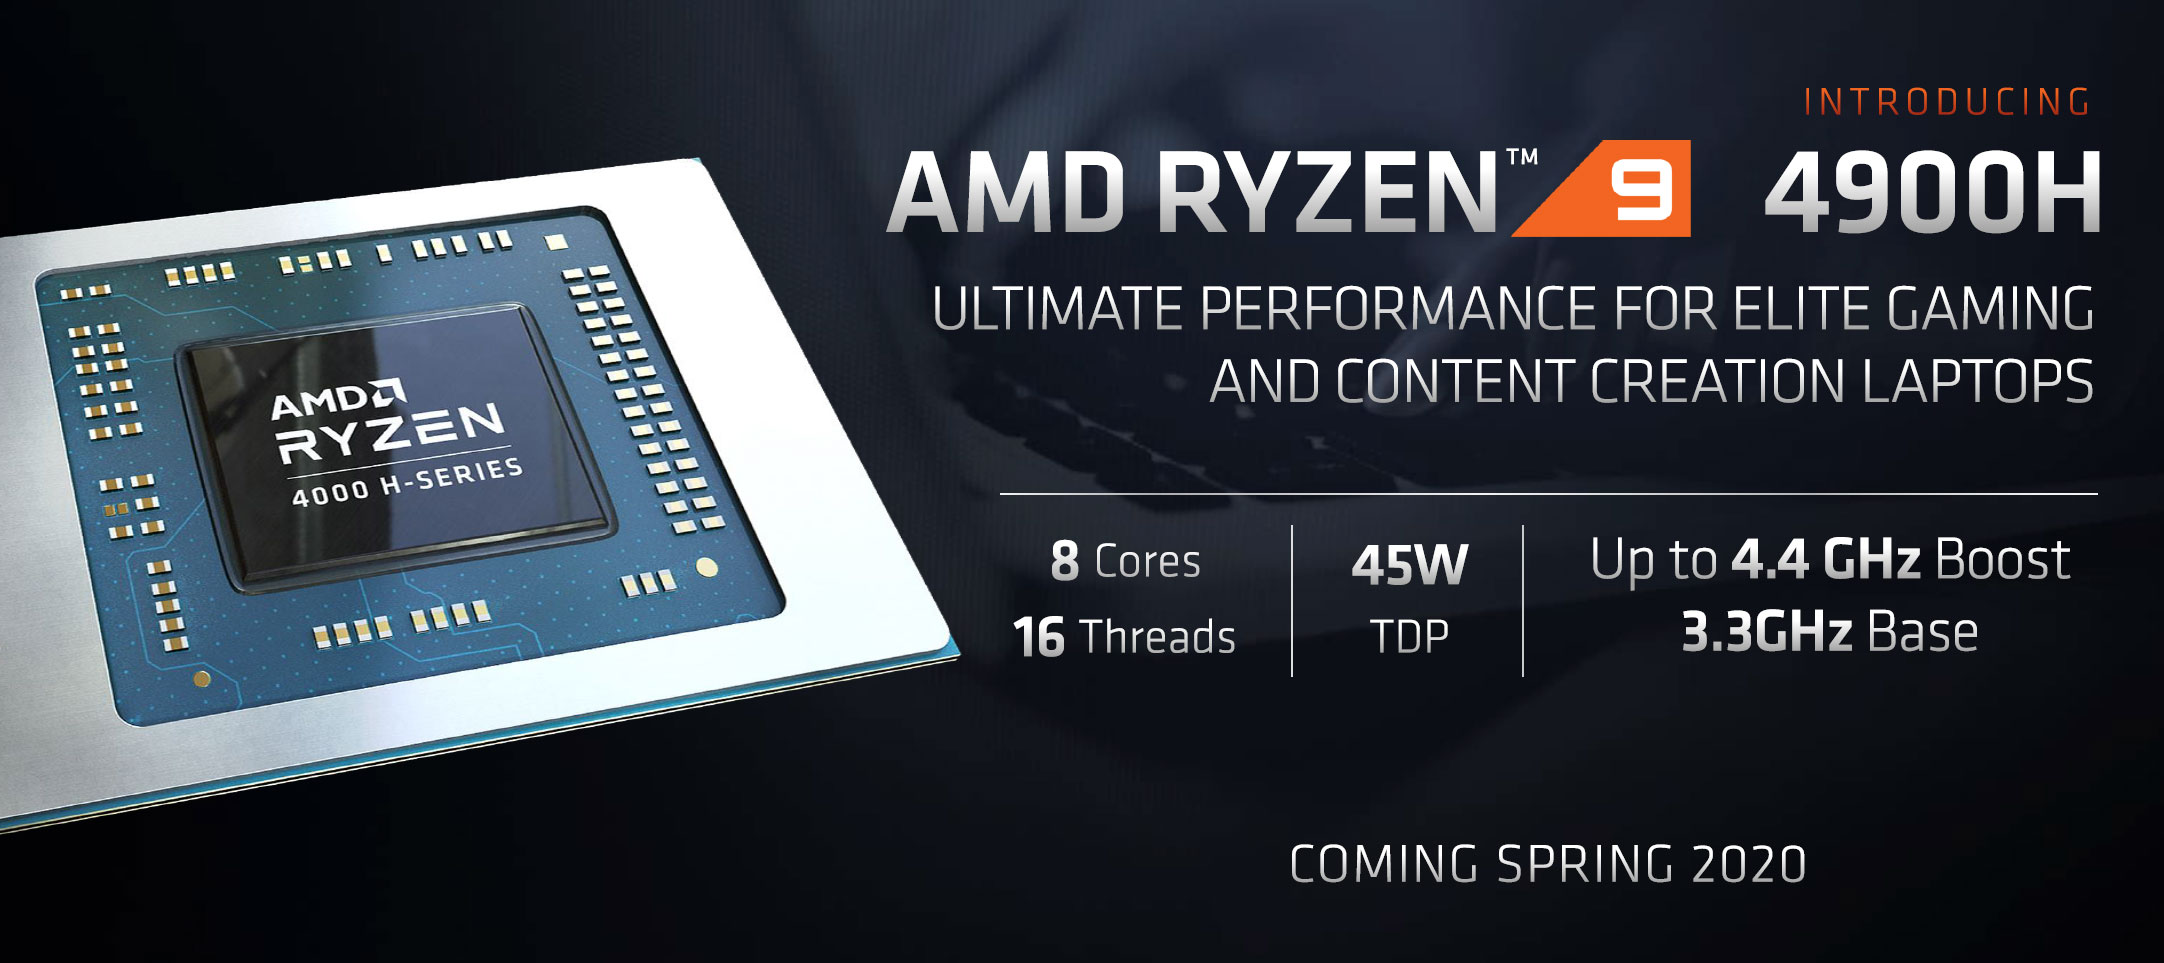 AMD Ryzen 9 4900H processor